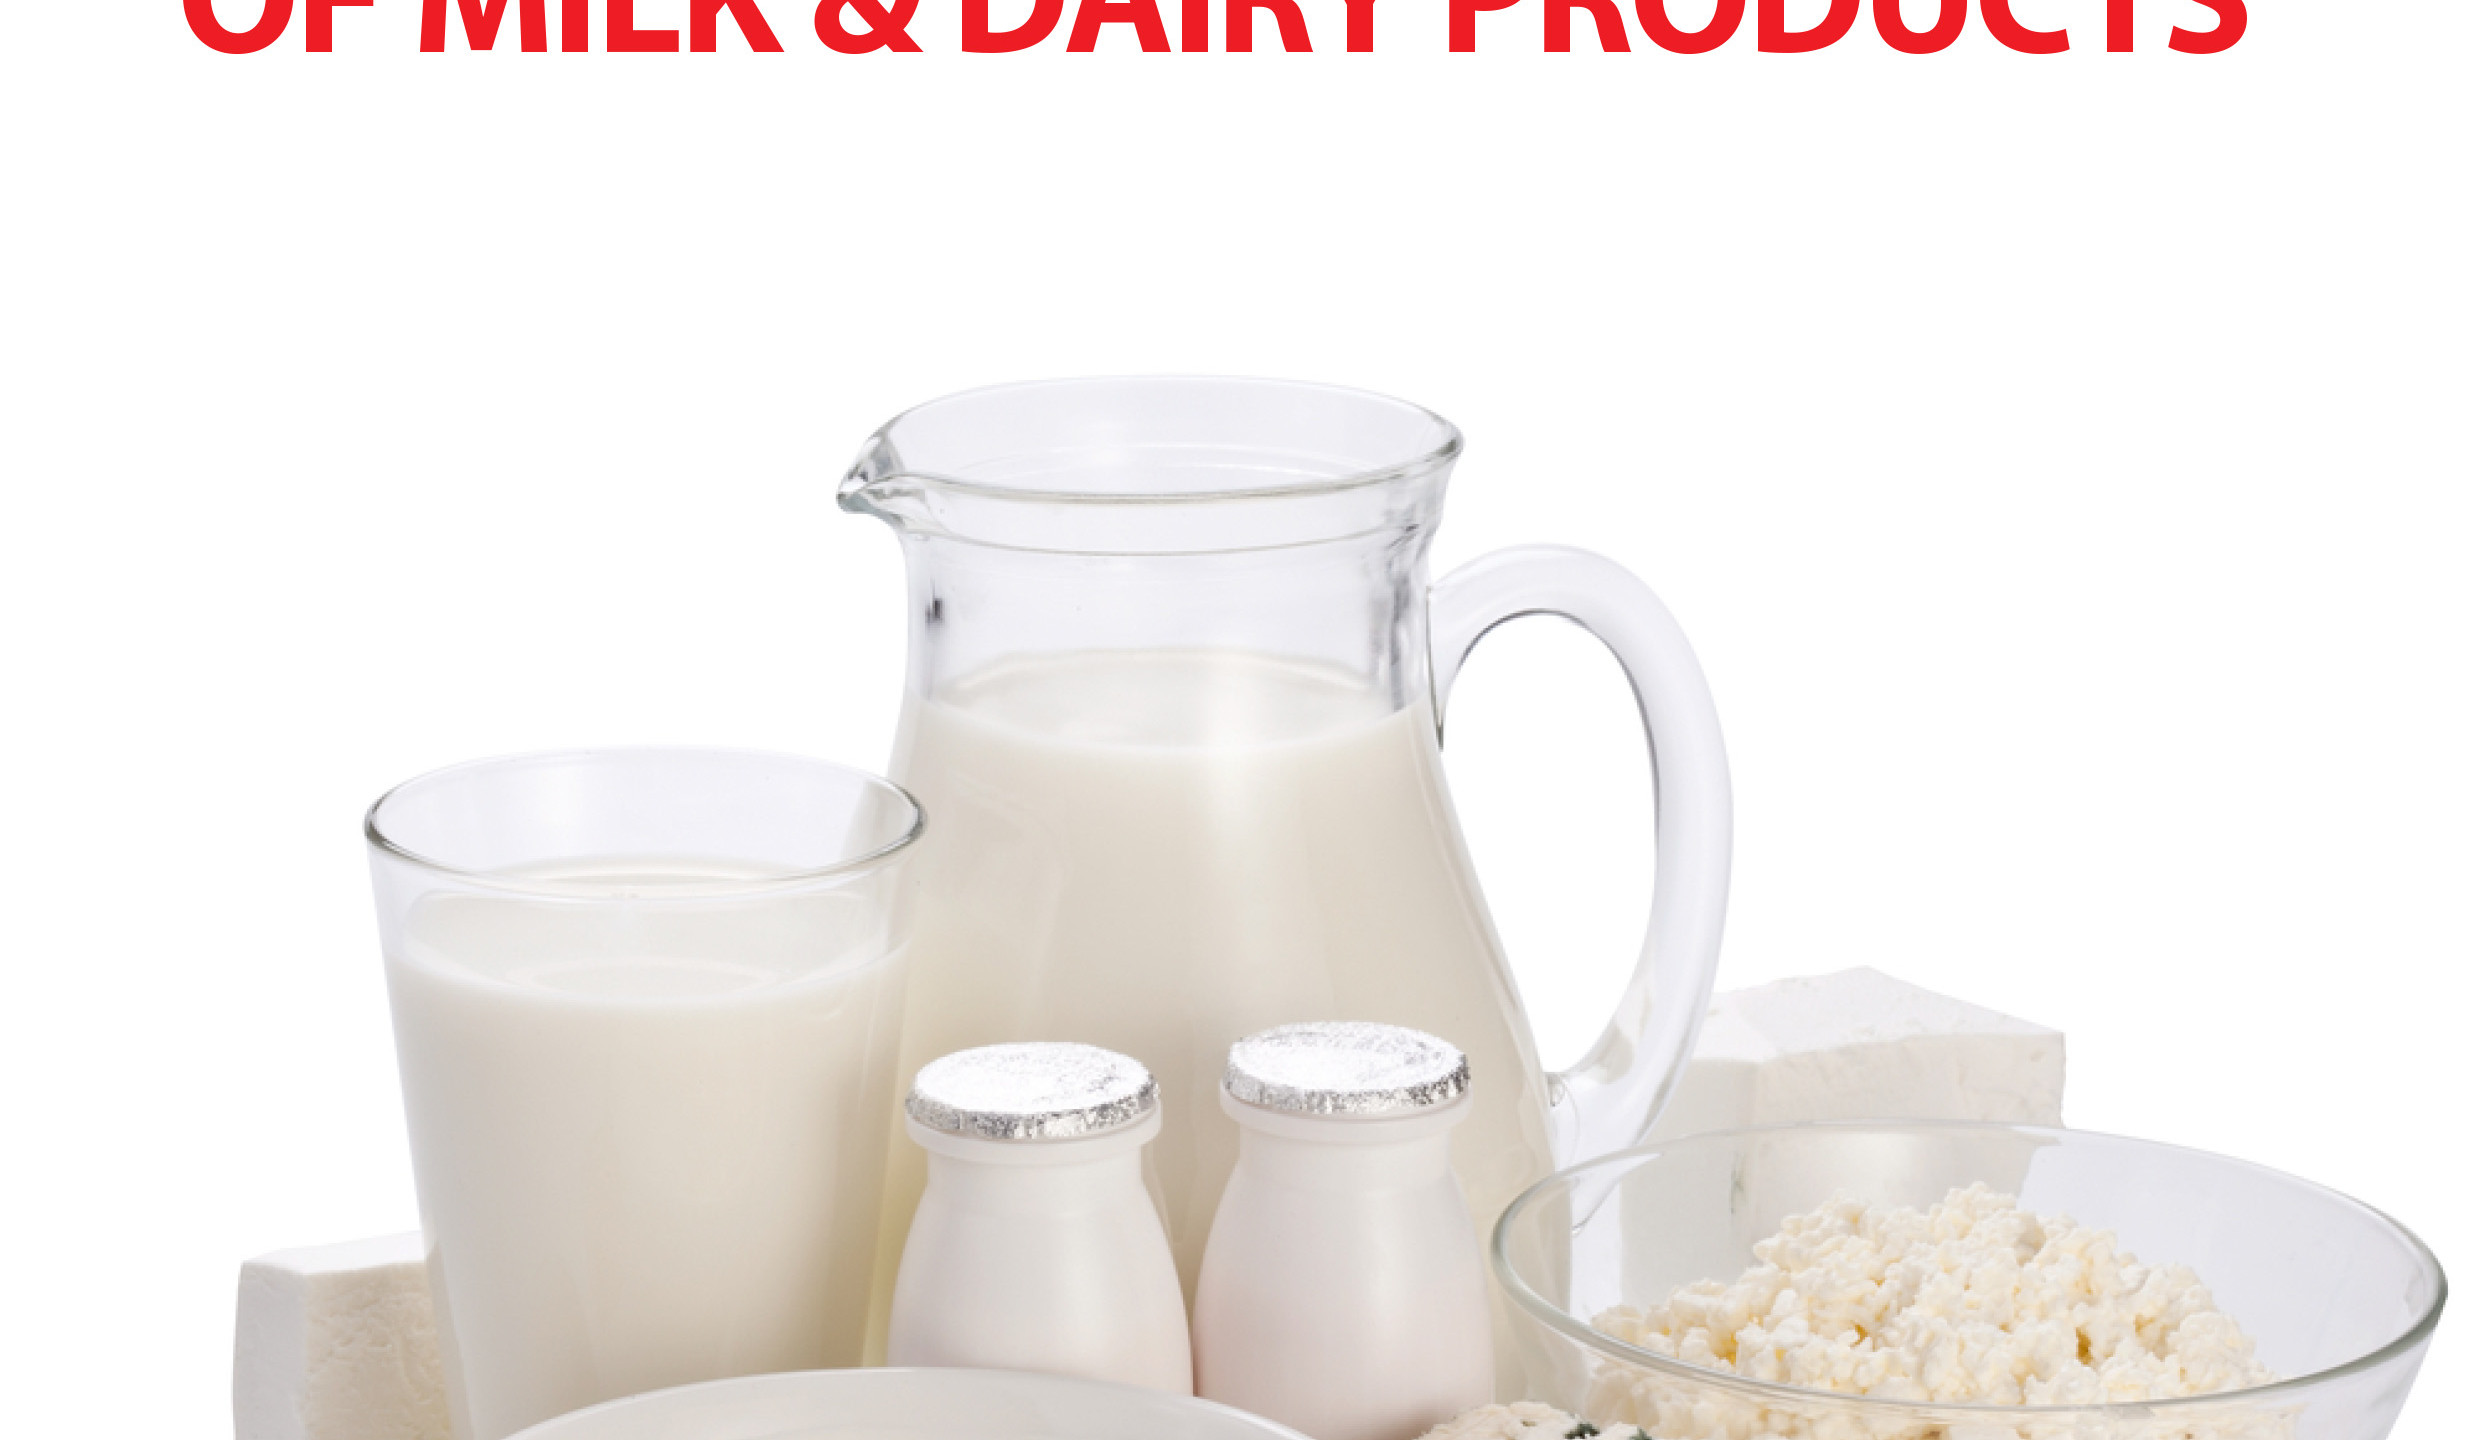 CEL C   Publication_Ecological Impacts of Milk & Dairy Products-1